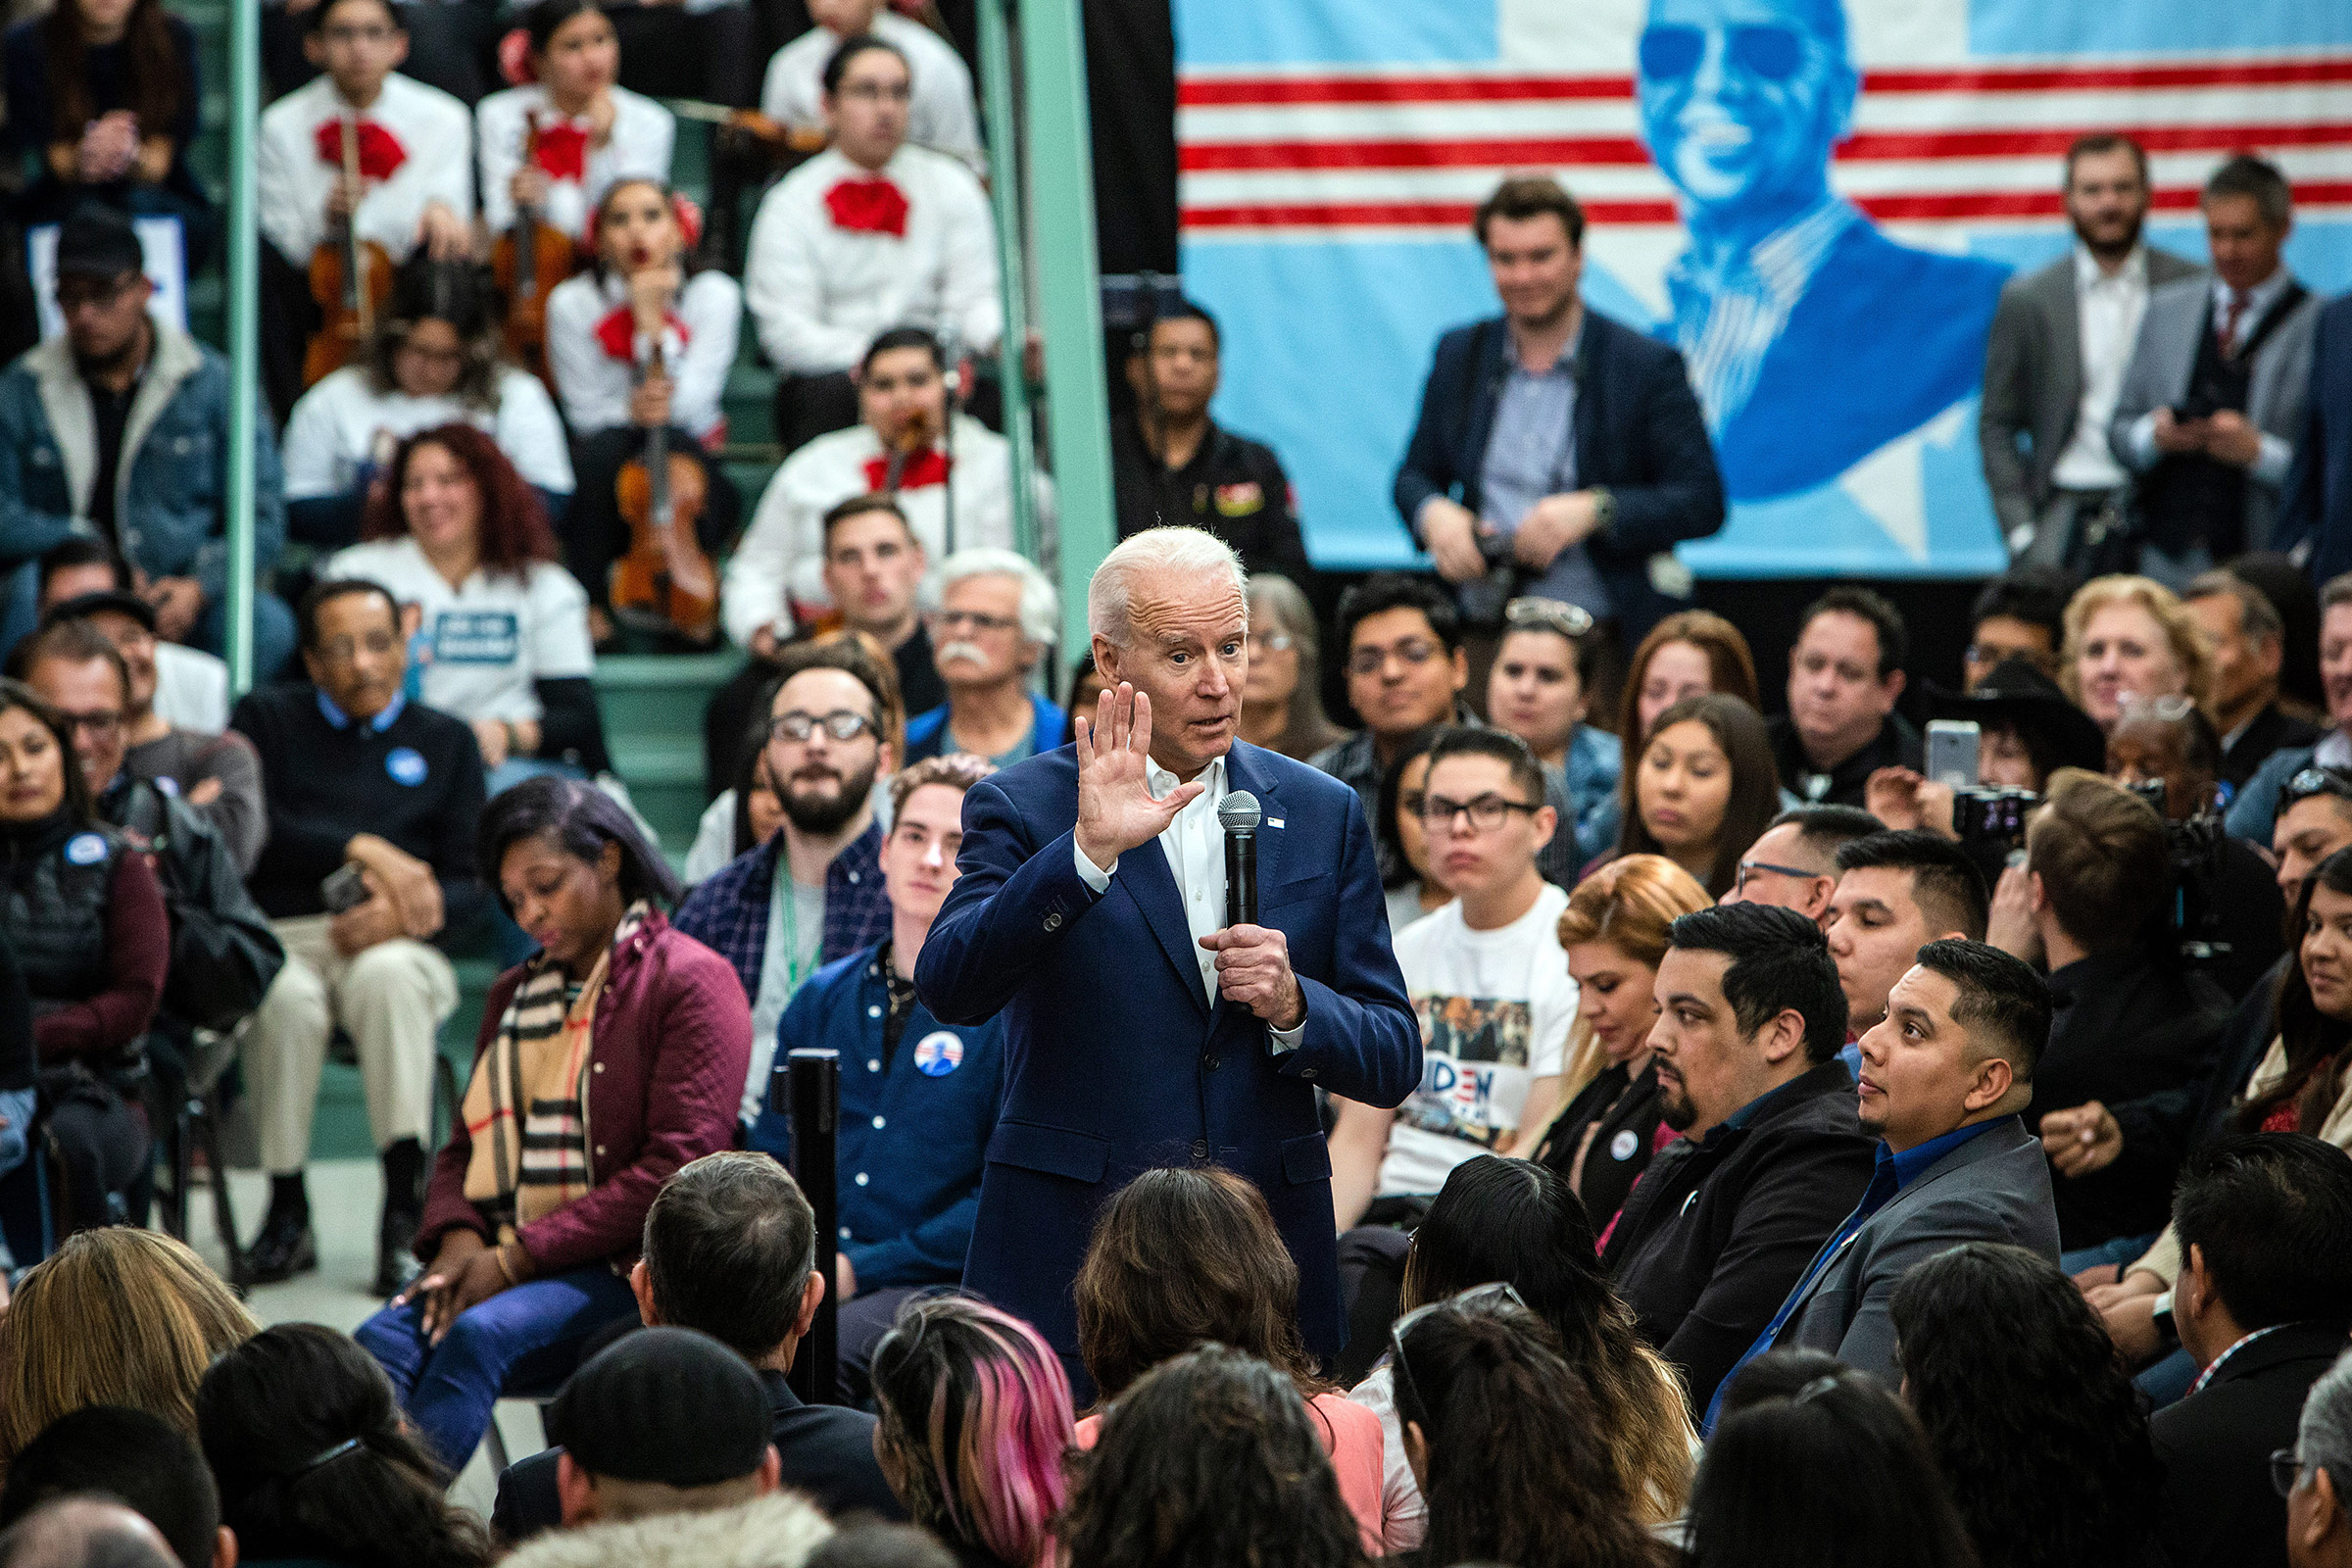 Former Vice President Joe Biden speaks at a rally organized by Mi Familia Vota, a national Latino voting group, in Las Vegas on Jan. 11, 2020.